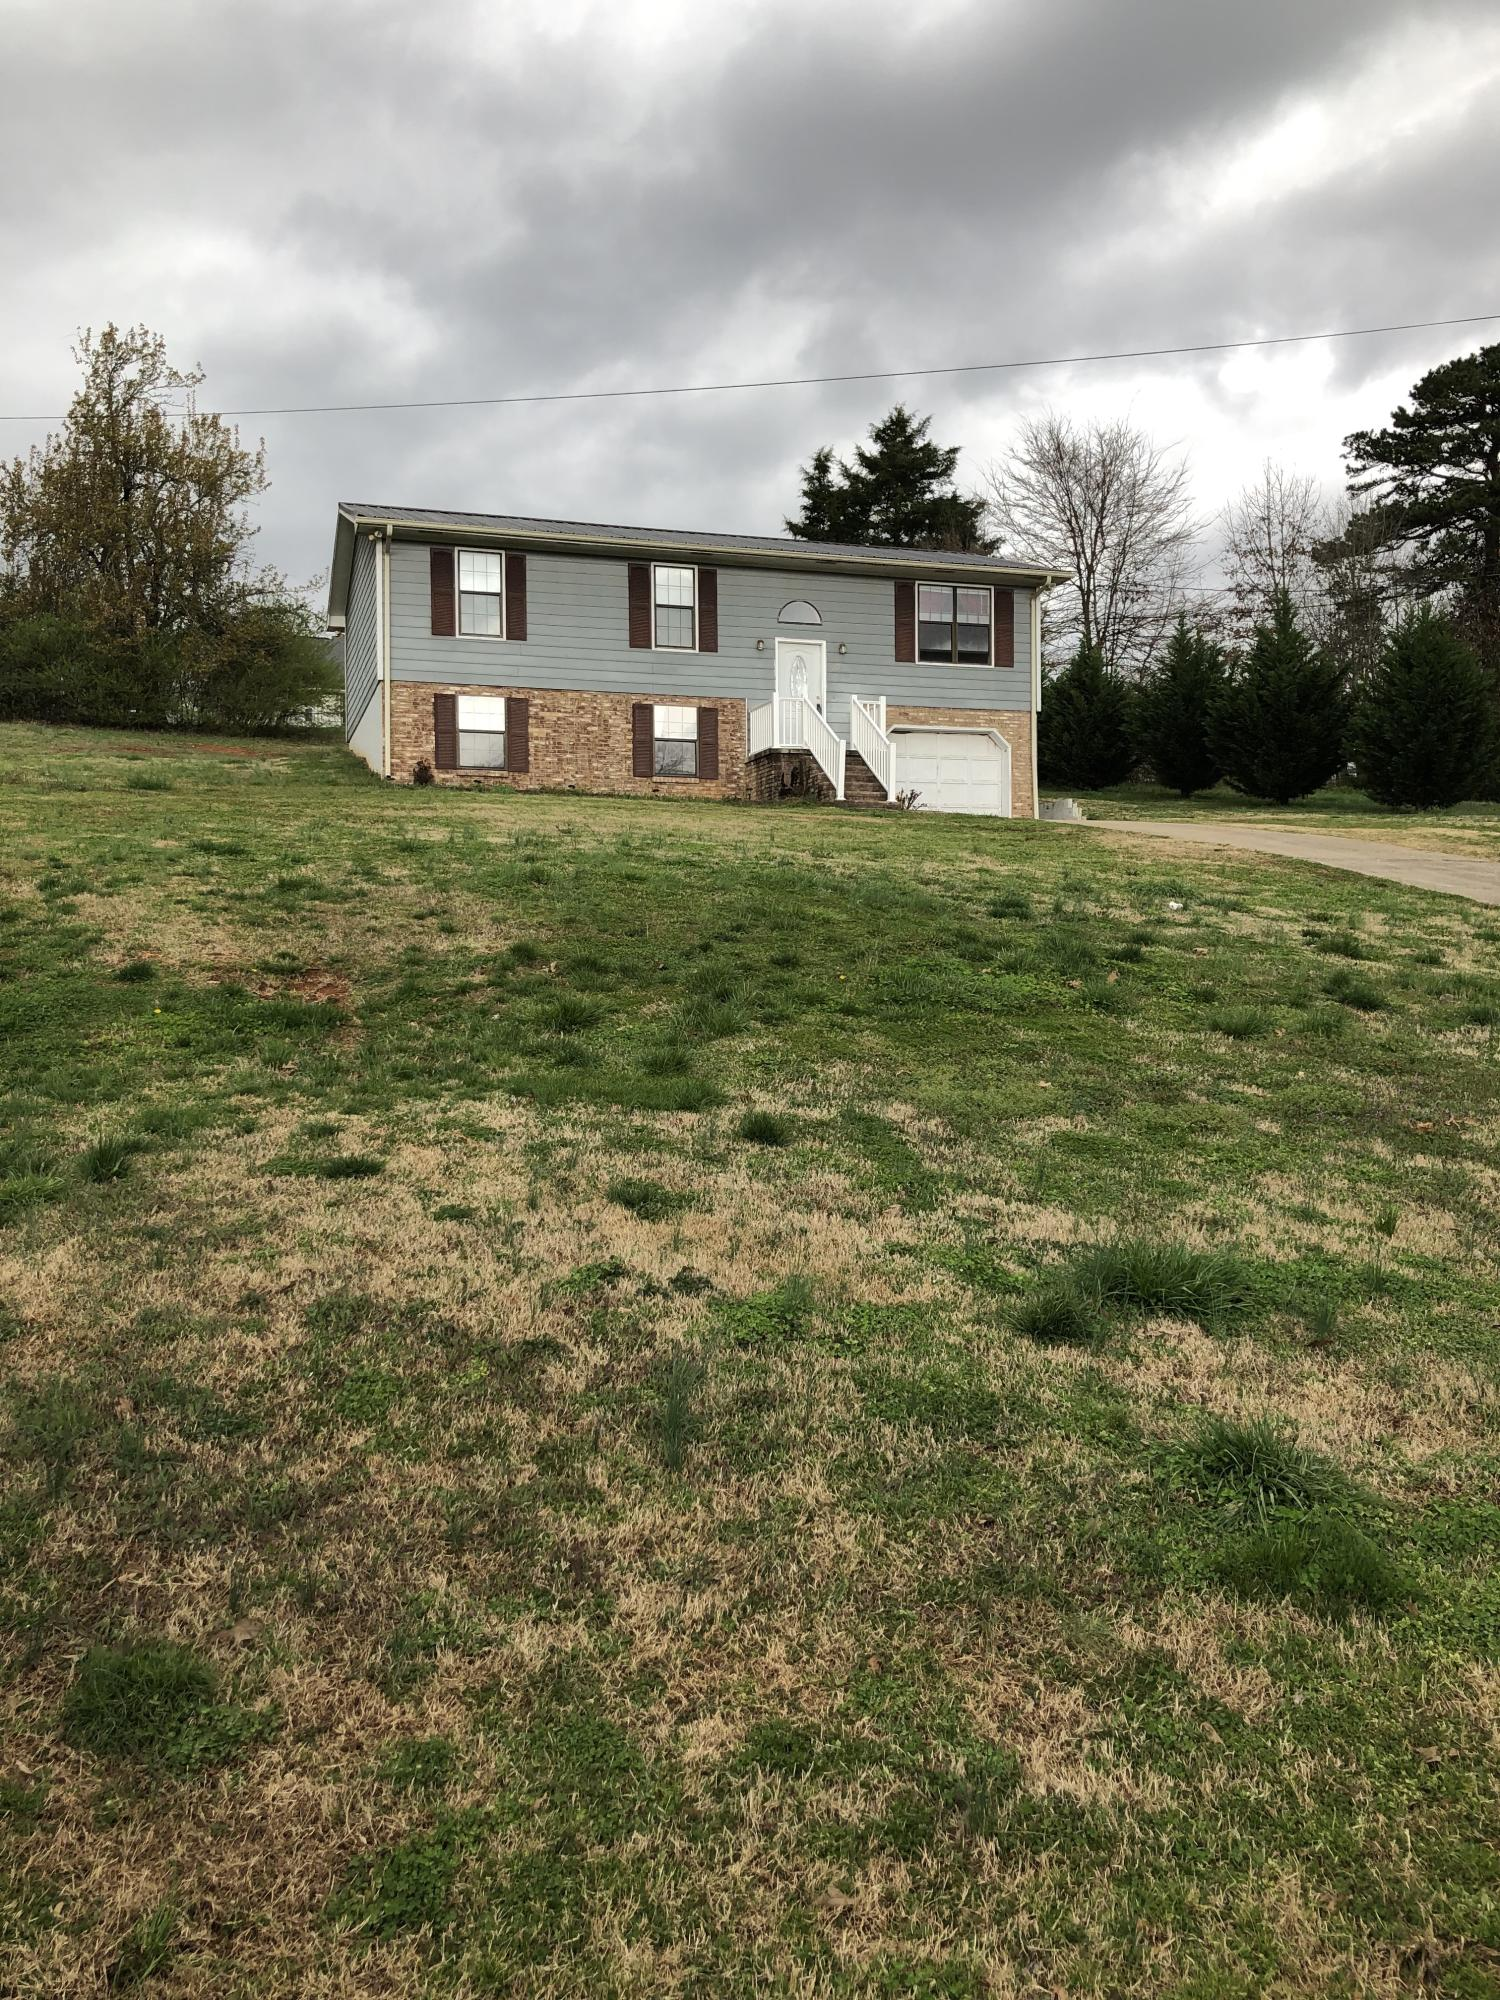 182 Cindy Dr, Jasper, TN 37347